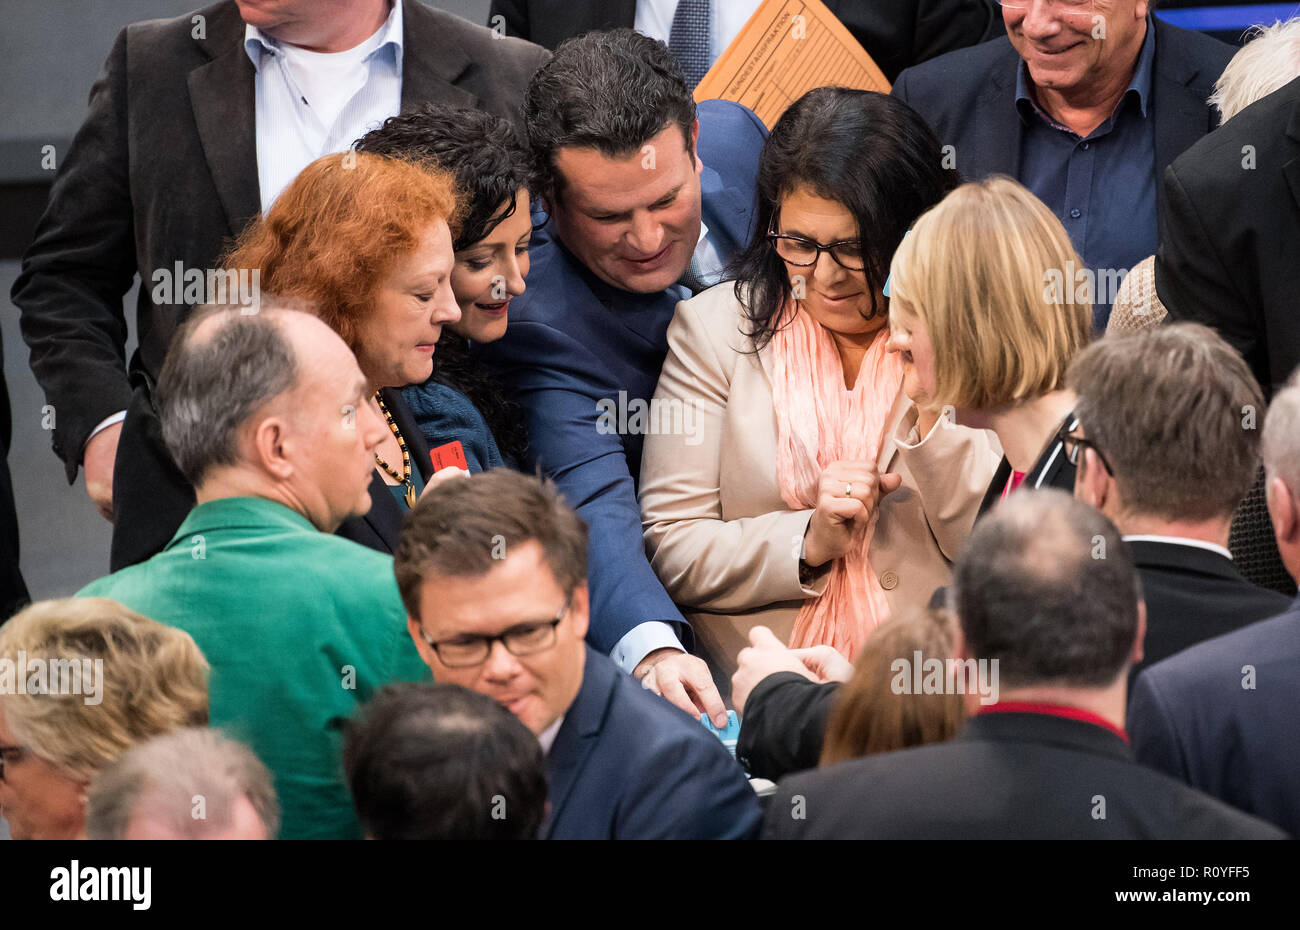 Berlin, Germany. 08th Nov, 2018. 08 November 2018, Berlin: Hubertus Heil (M, SPD), Federal Minister of Labour and Social Affairs, hands in his voting card at the roll-call vote on the pension package during the plenary session of the German Bundestag. Topics of the 61st session of the 19th legislative period include the pension package introduced by the Federal Government, additional safe countries of origin, tax relief for families, changes in asylum law, accelerated traffic planning and a current hour on the INF (Intermediate Range Nuclear Forces) nuclear disarmament treaty. Photo: Bernd von - Stock Image